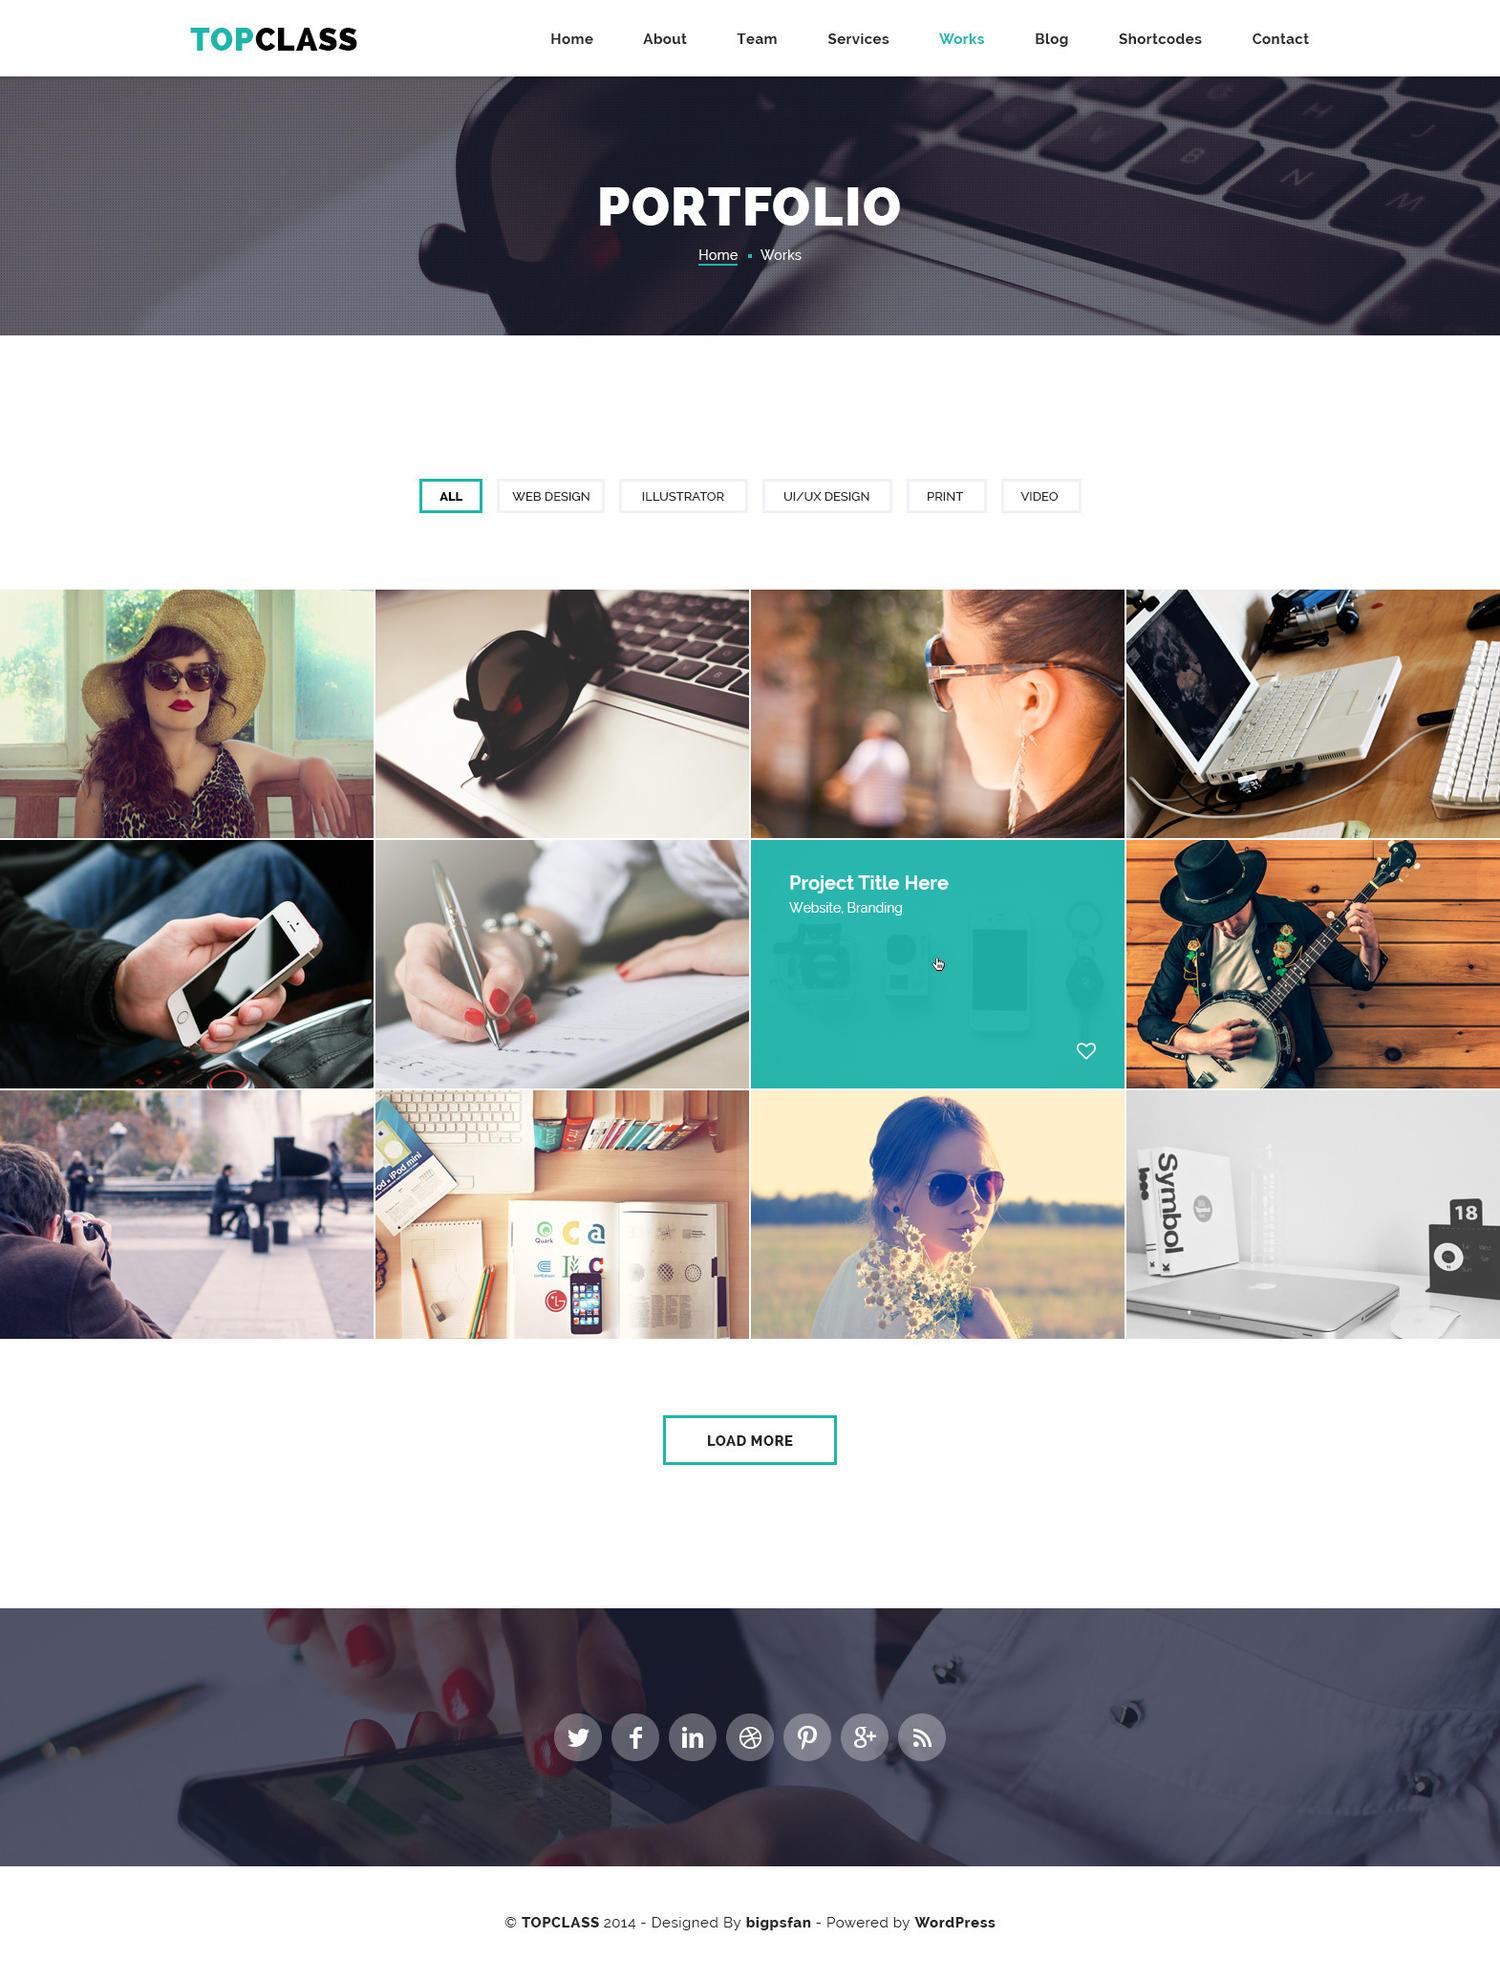 HTML to Wordpress Theme by Jewel_Theme - 106323